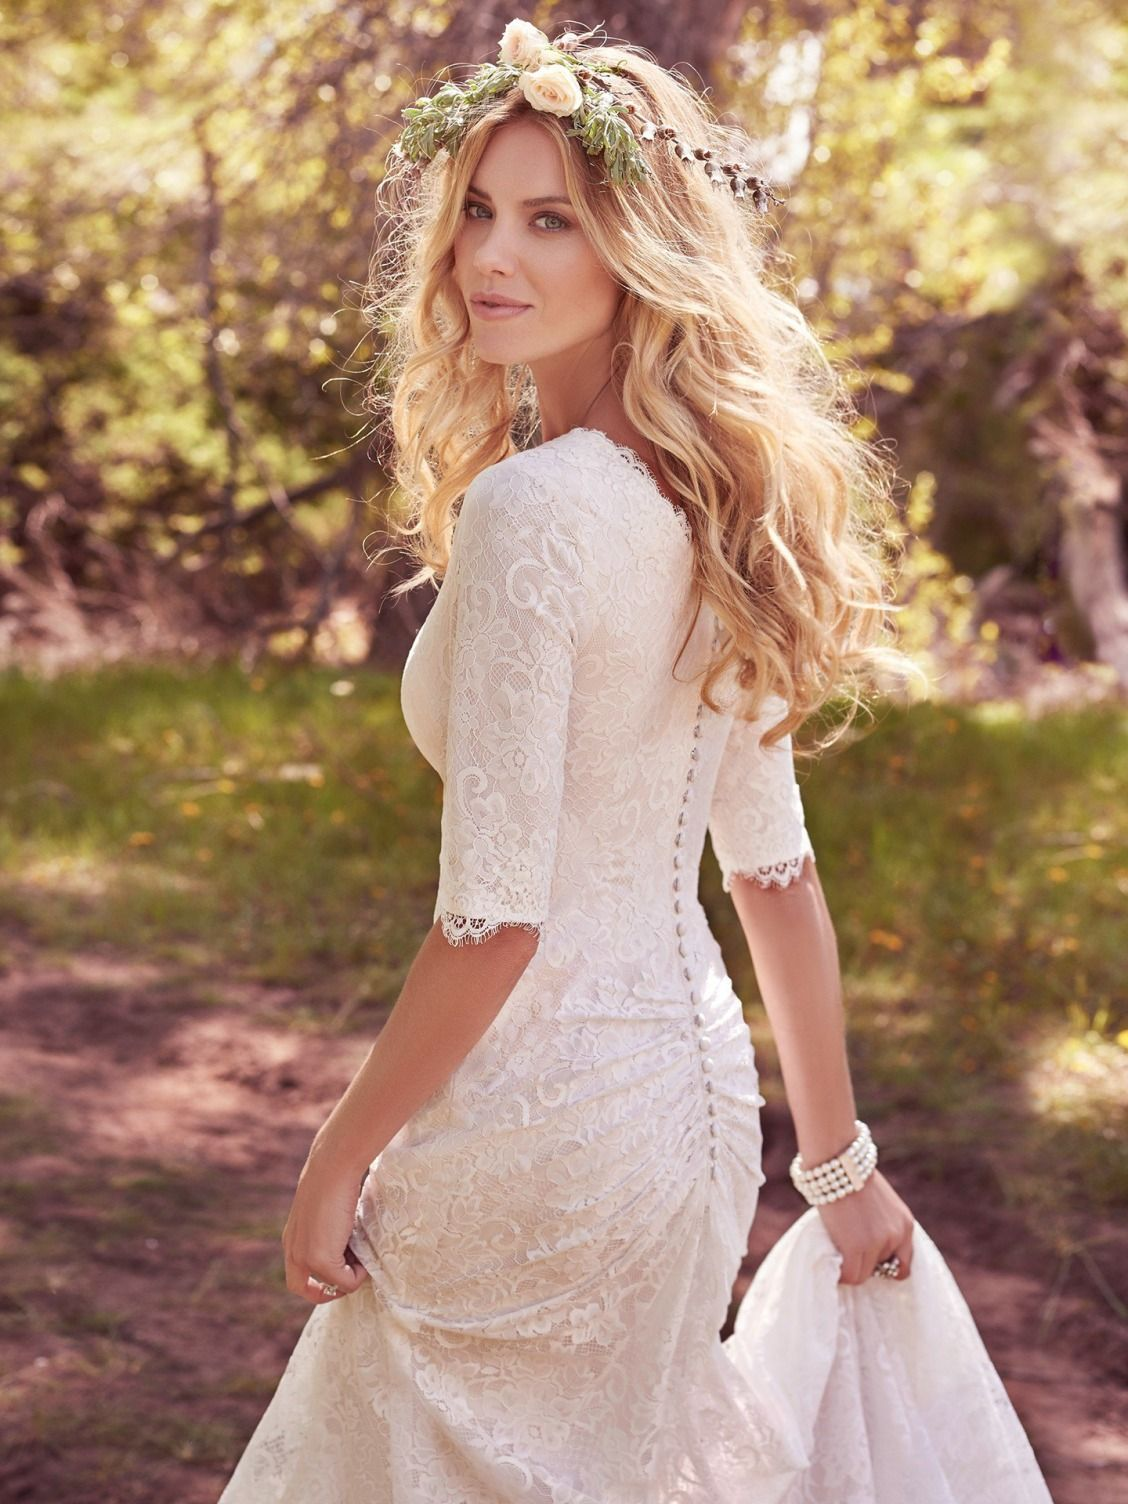 Lace fit and flare wedding dress with sleeves  Maggie Sottero Wedding Dresses  Maggie sottero Wedding dress and